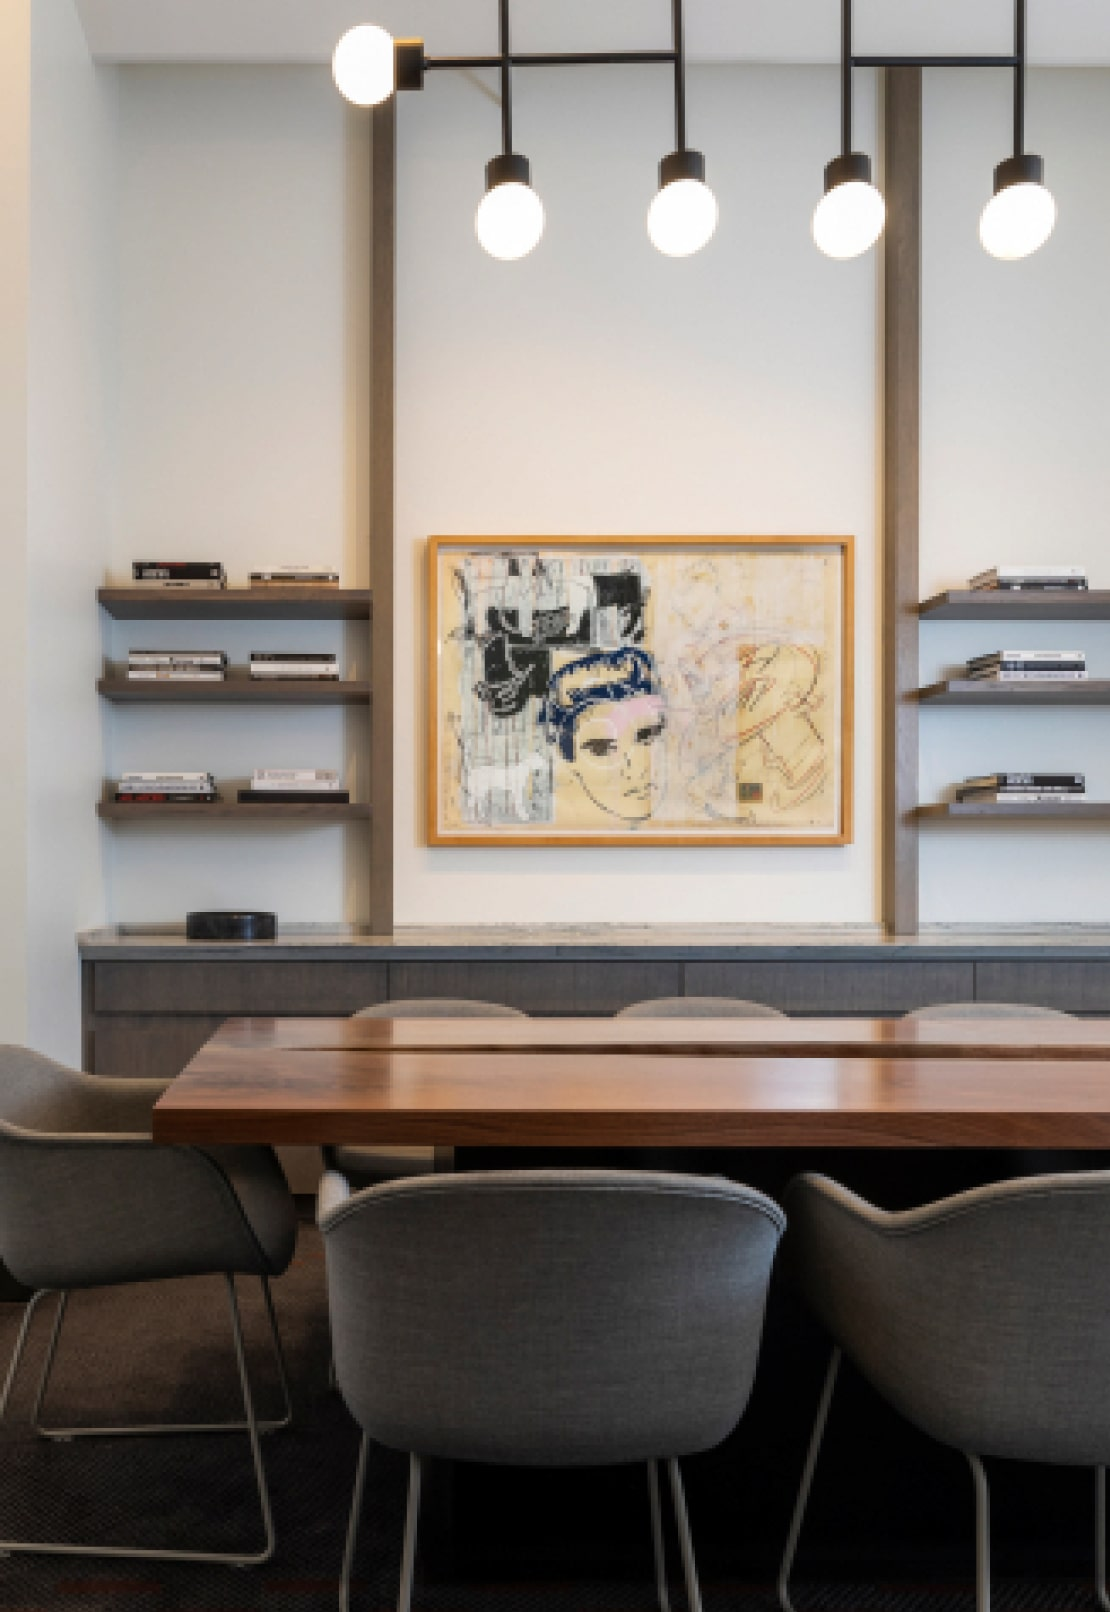 Conference room design at The Central Station